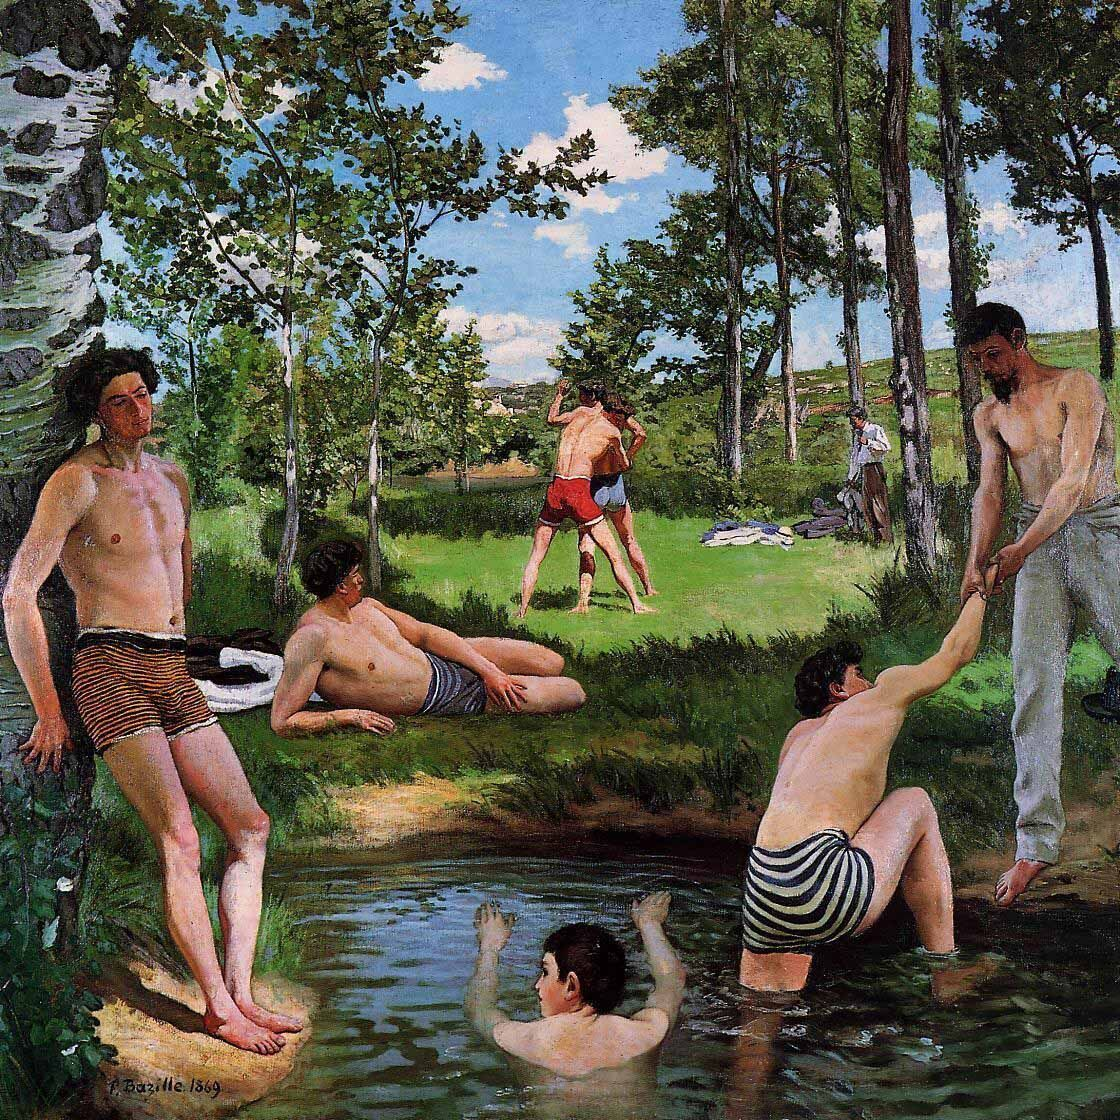 Frédéric Bazille, Summer Scene (Bathers), 1869. Fogg Museum. Photo via Wikimedia Commons.